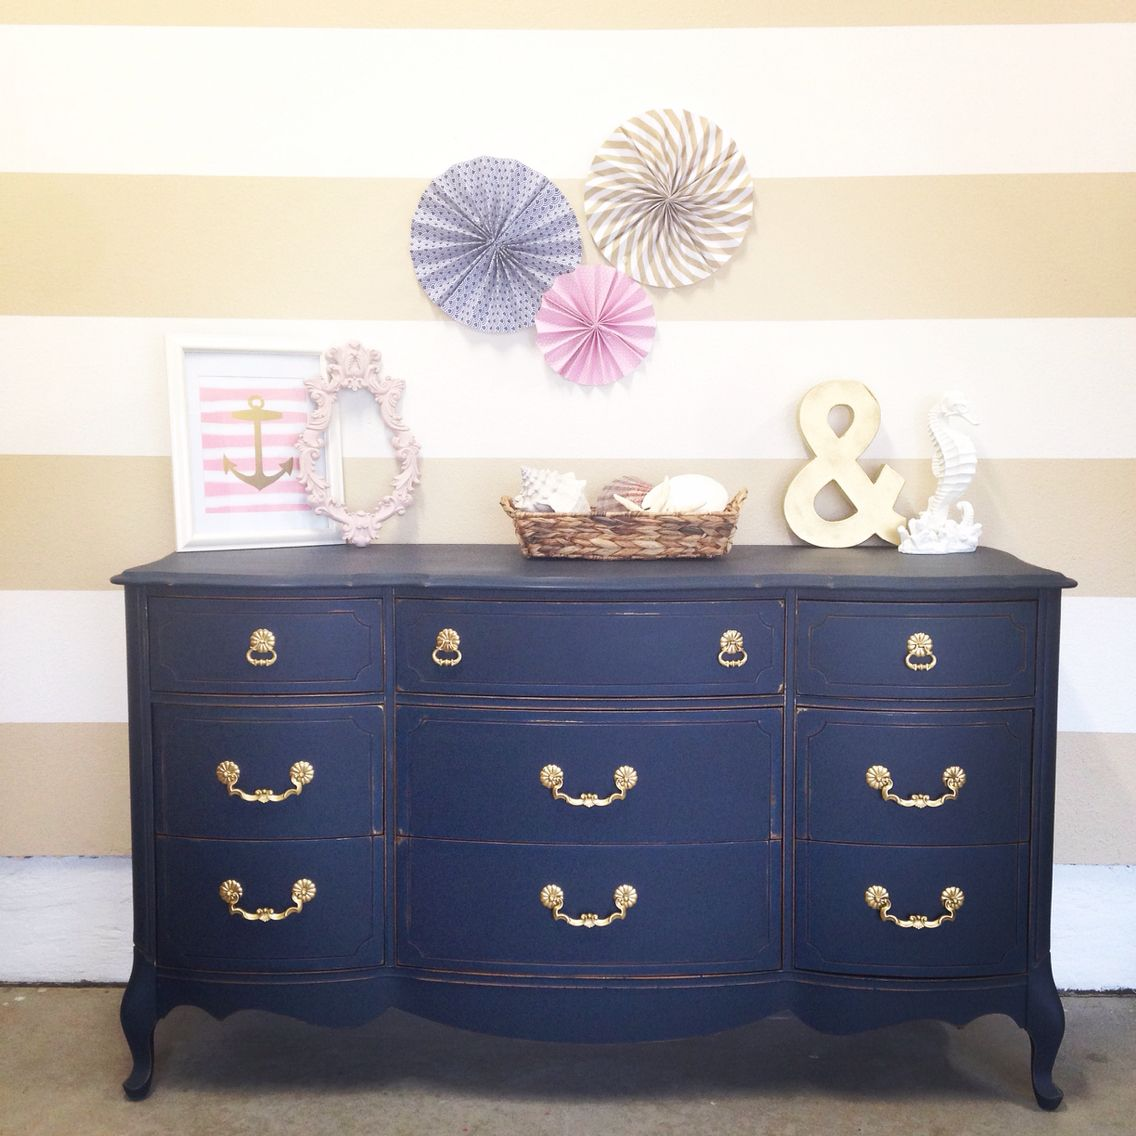 Custom Mix Of Annie Sloan Chalkpaint To Get This Navy Blue Color